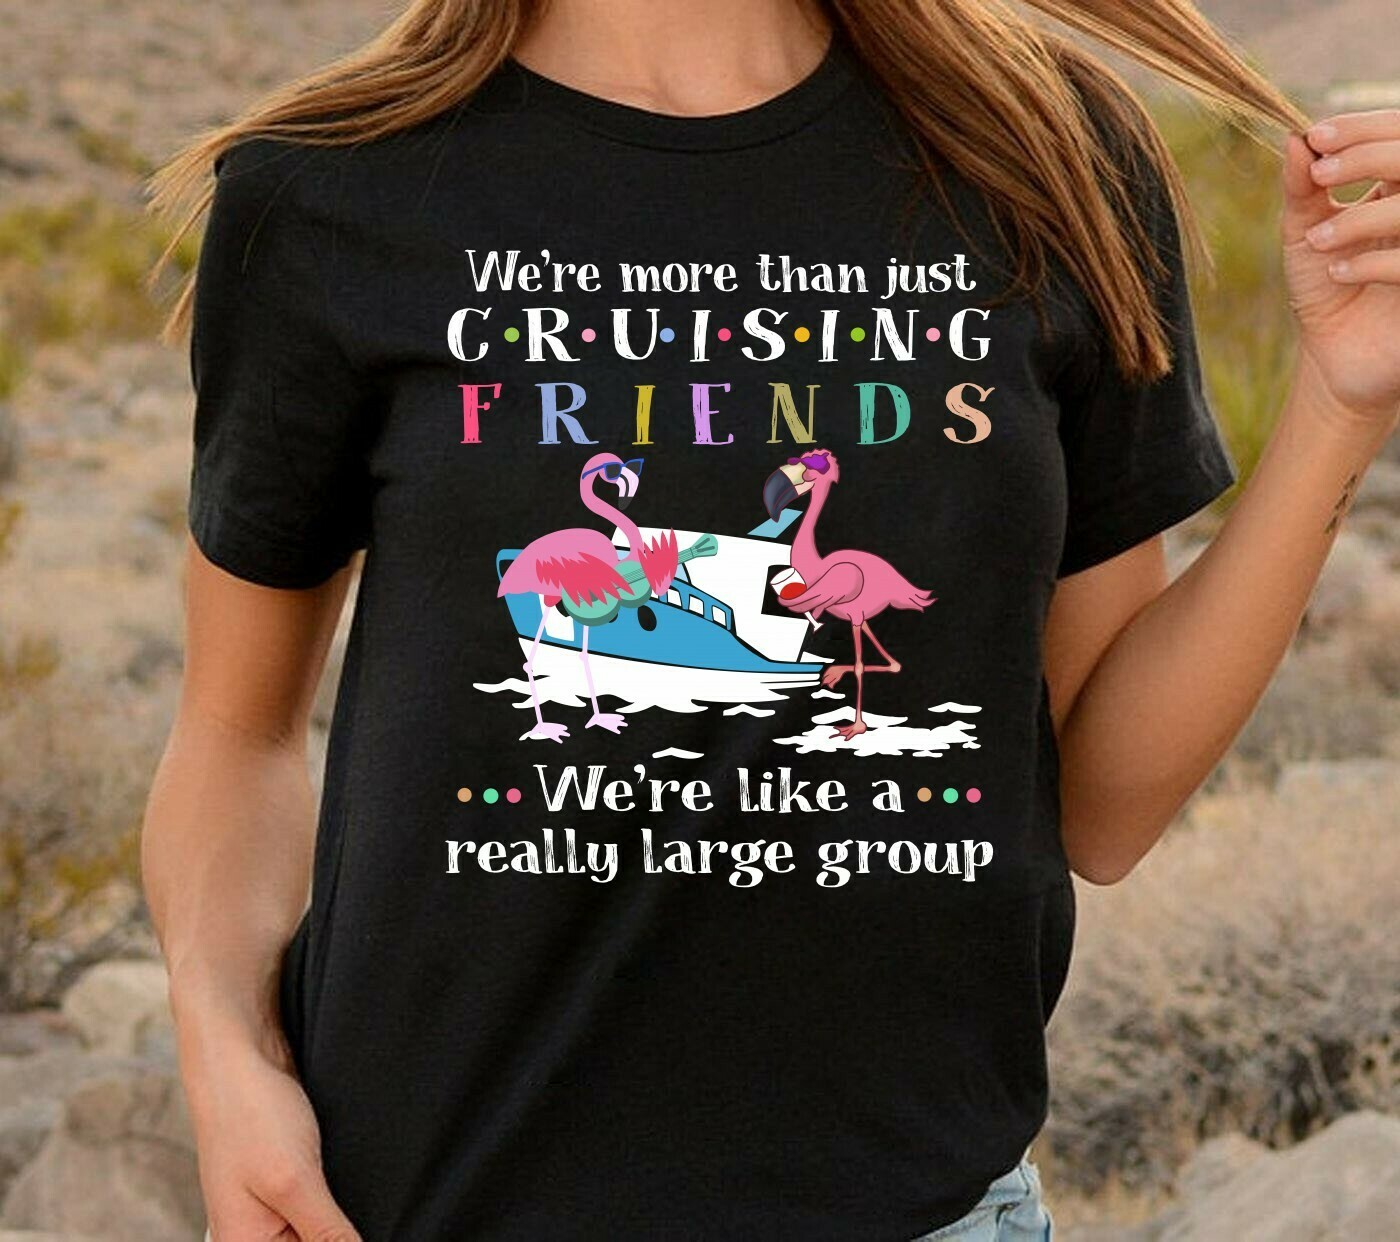 We're More Than Just Cruising Friends Really Large Group - Funny Flamingo Play Guitar Drink Wine Party Vacation Gift For Friends Team TShirt Long Sleeve Sweatshirt Hoodie Jolly Family Gifts